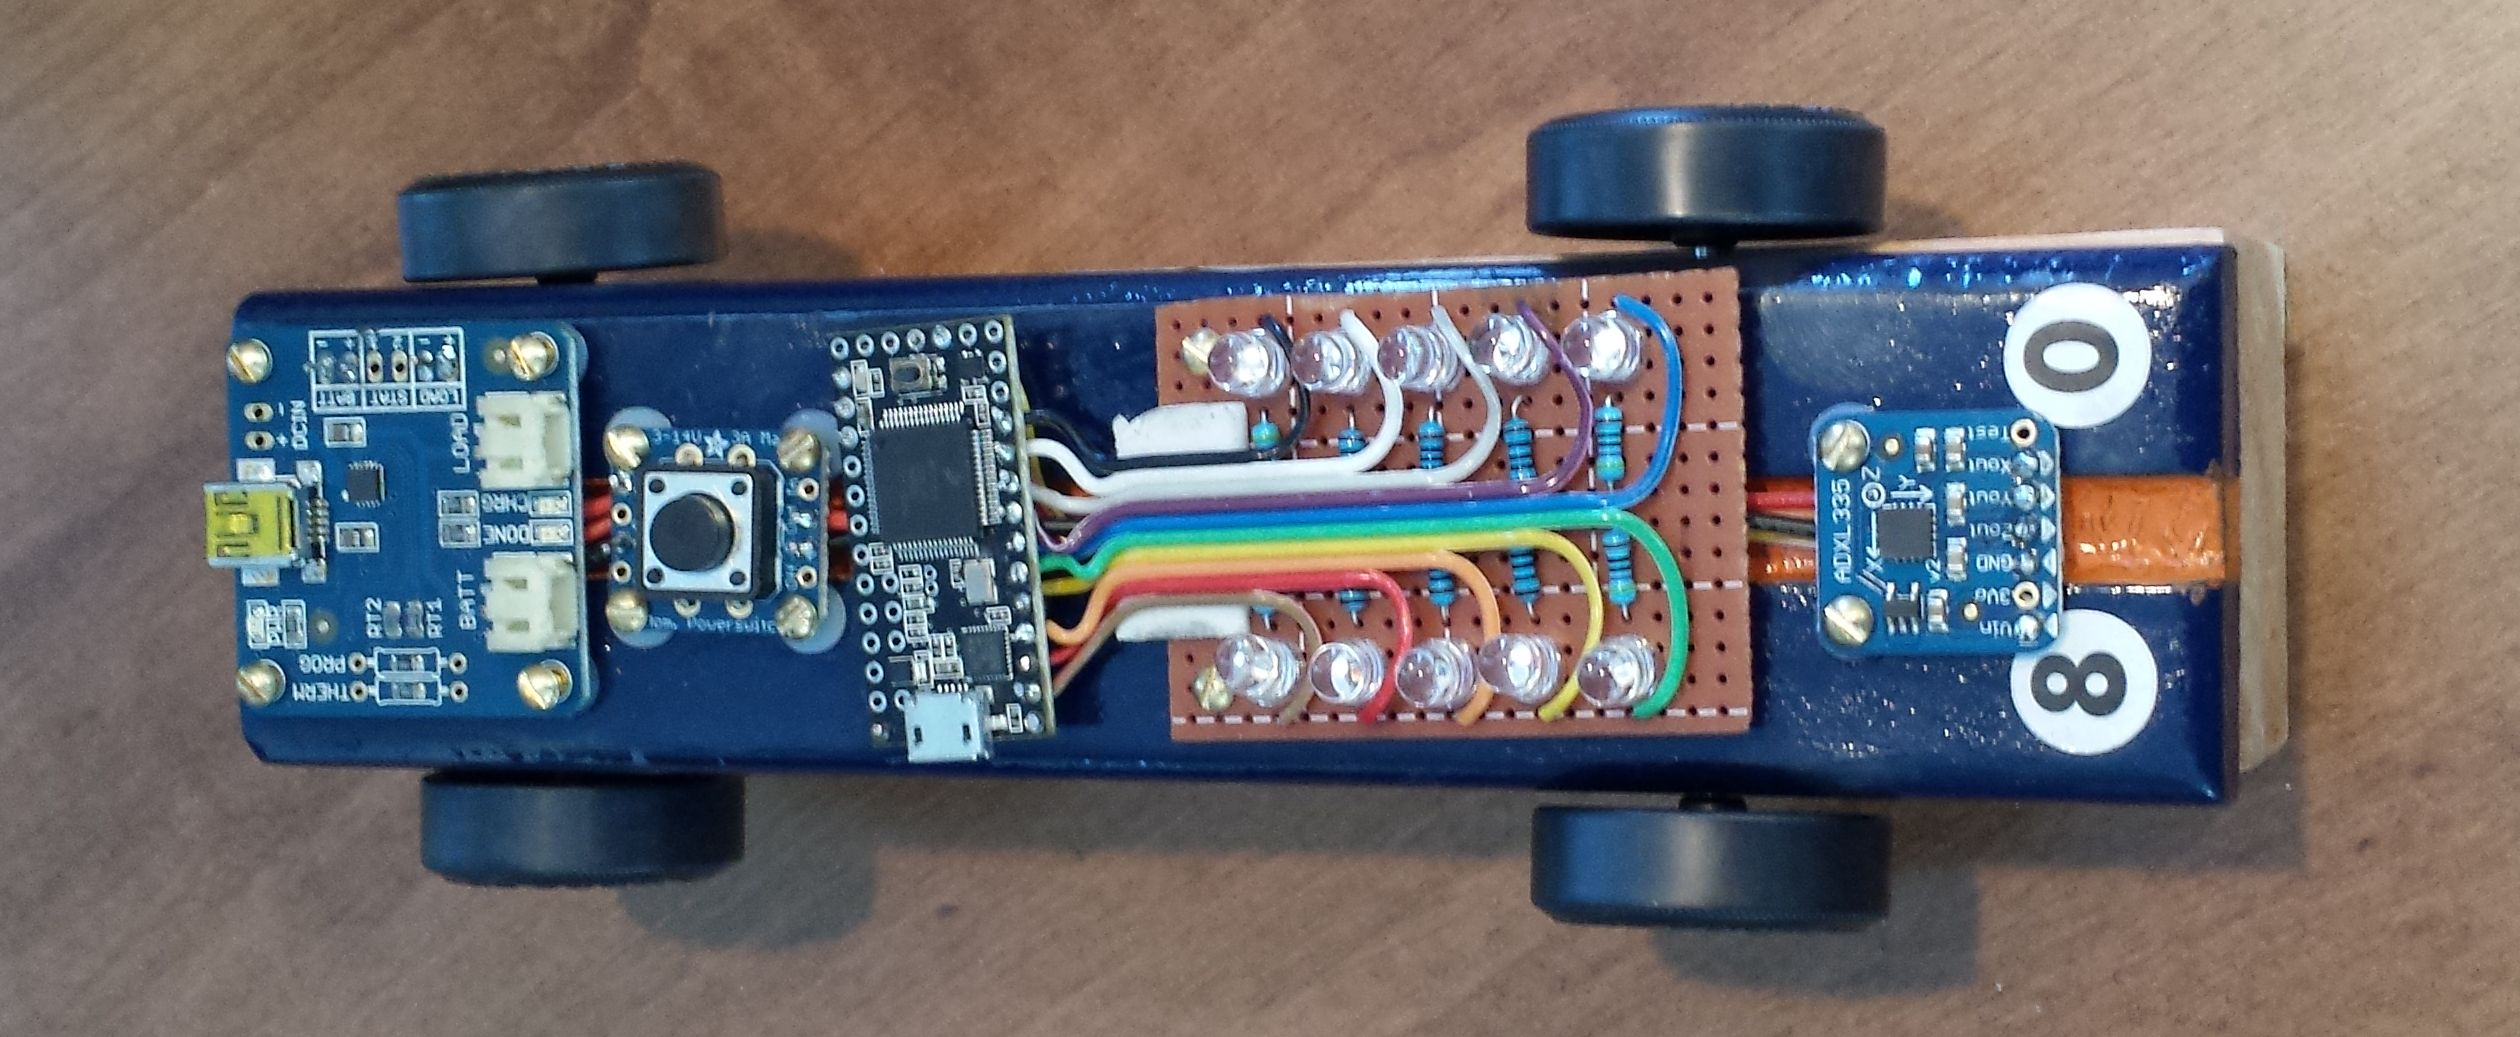 Arduino Powered Pinewood Derby Race Car Make Trim Limit Switch Wiring Diagram Figure 2 The